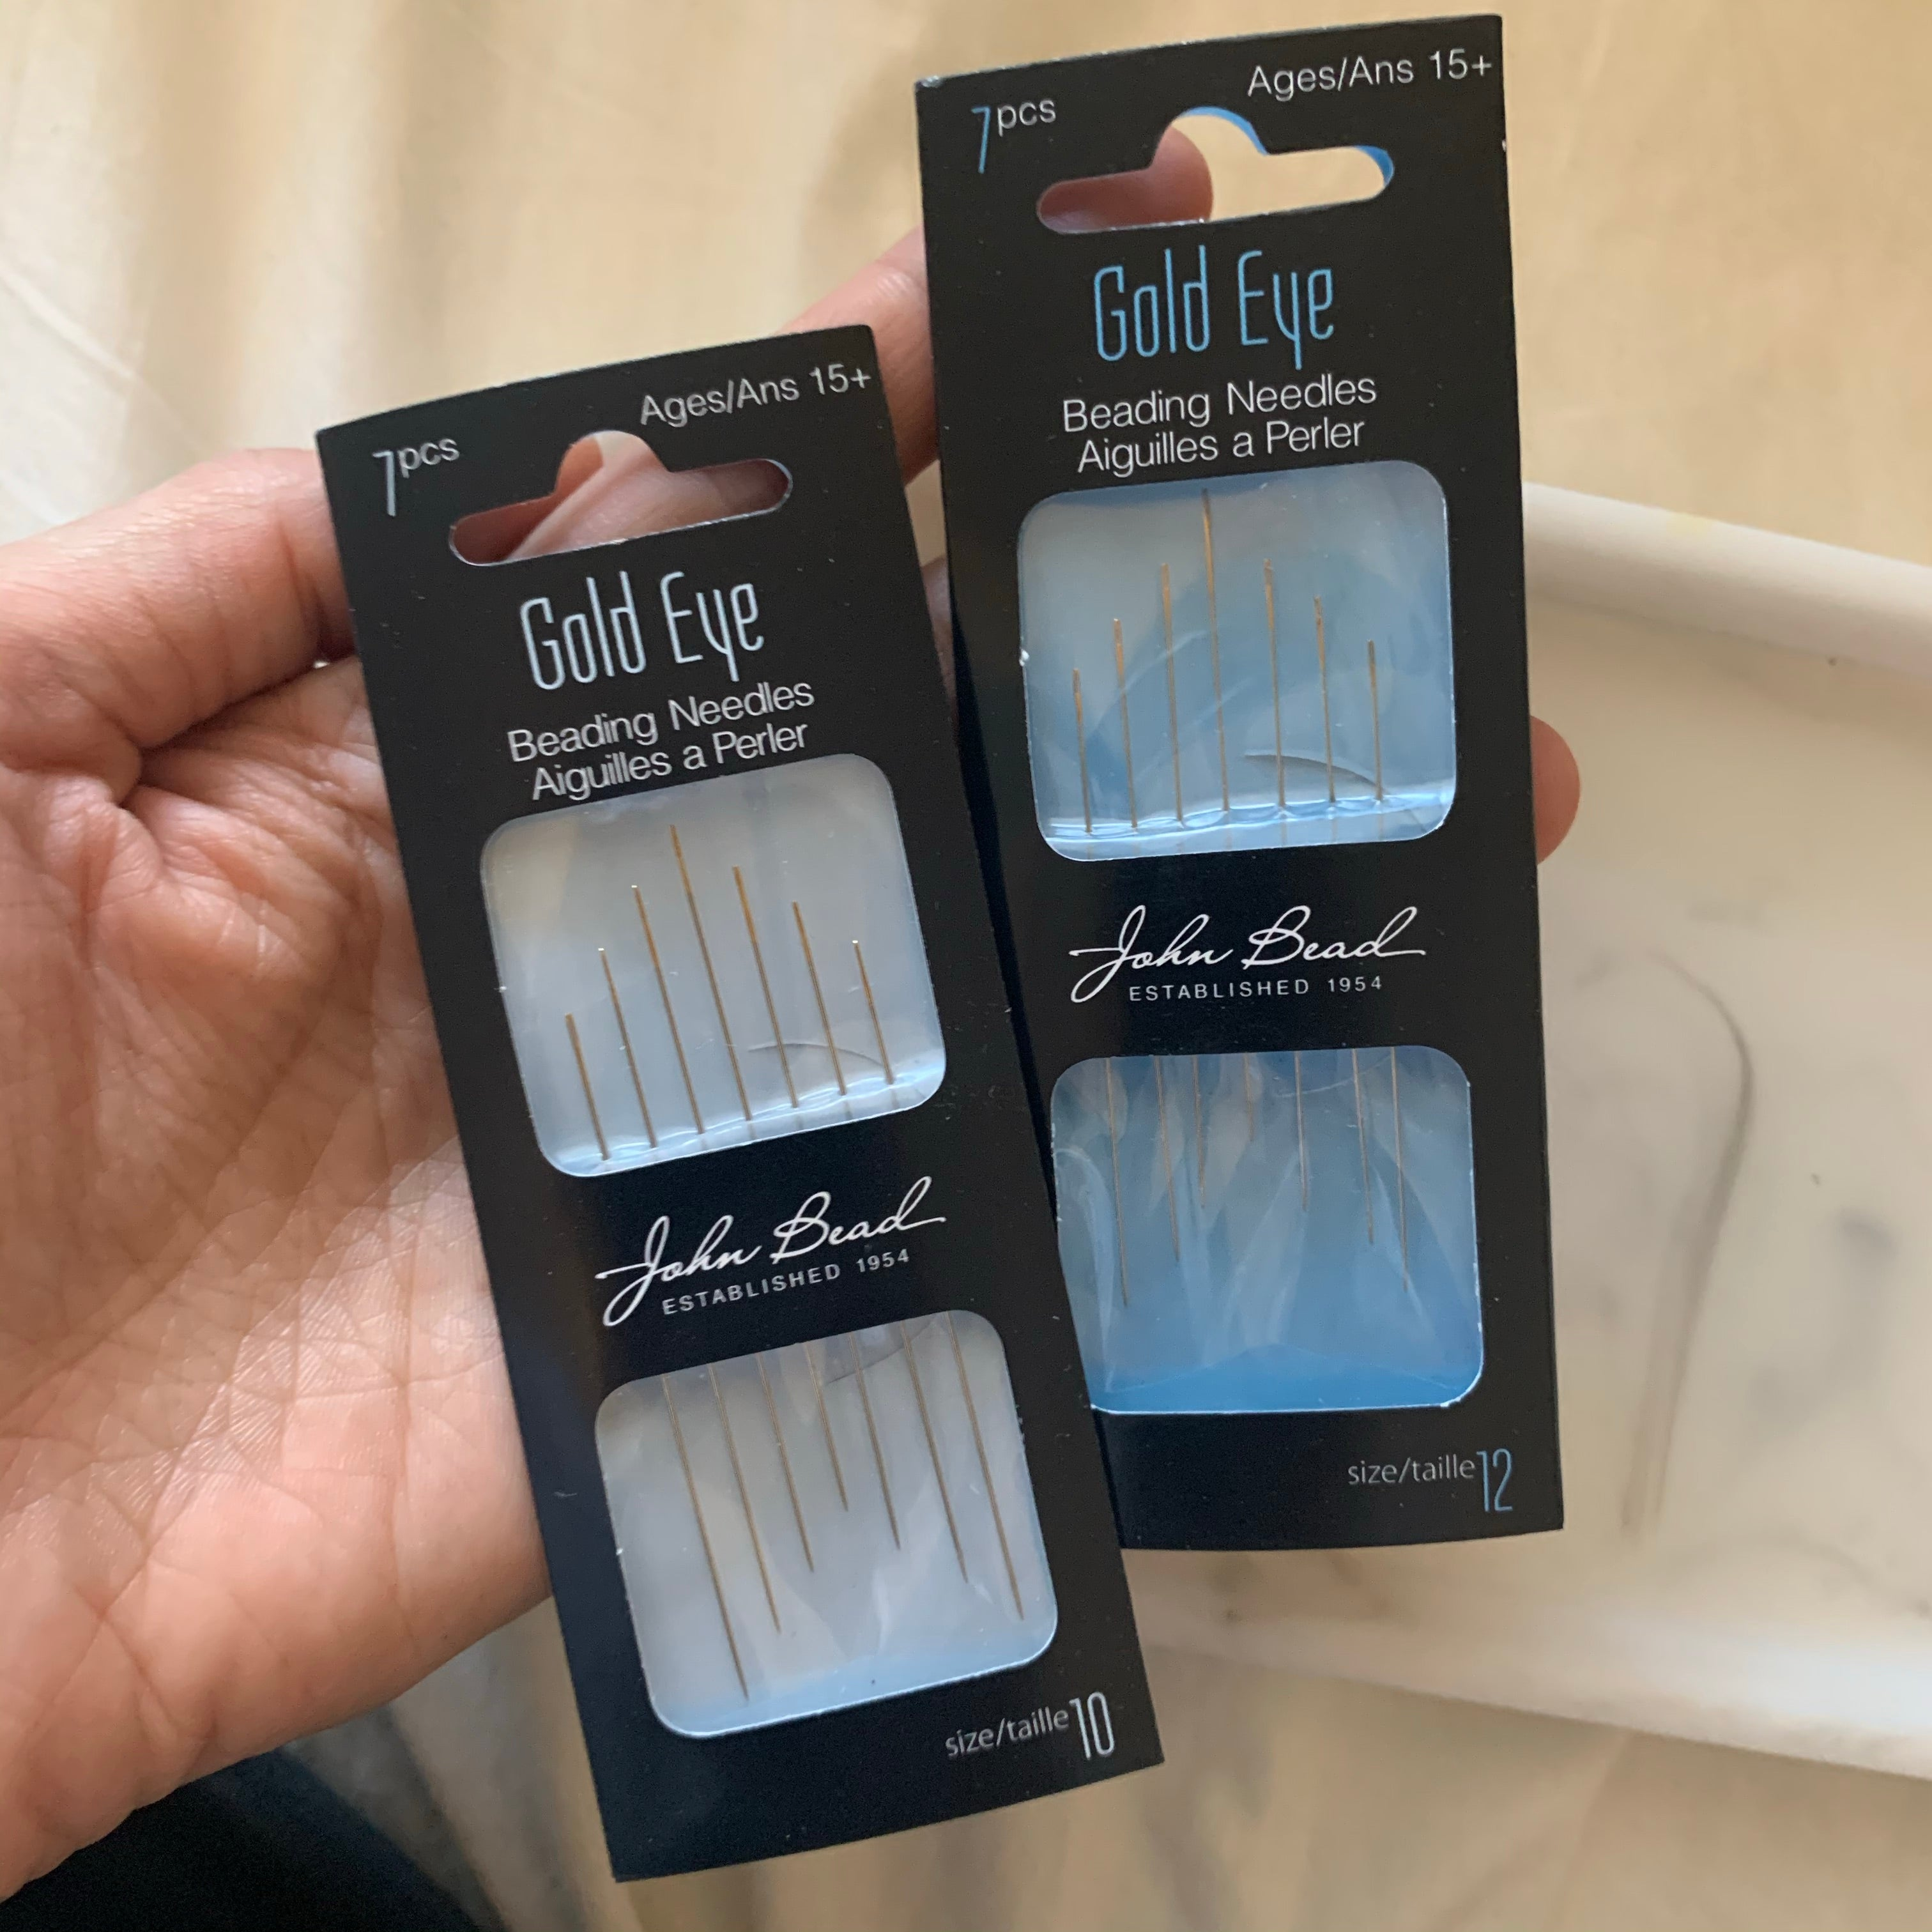 Gold Eye beading needles